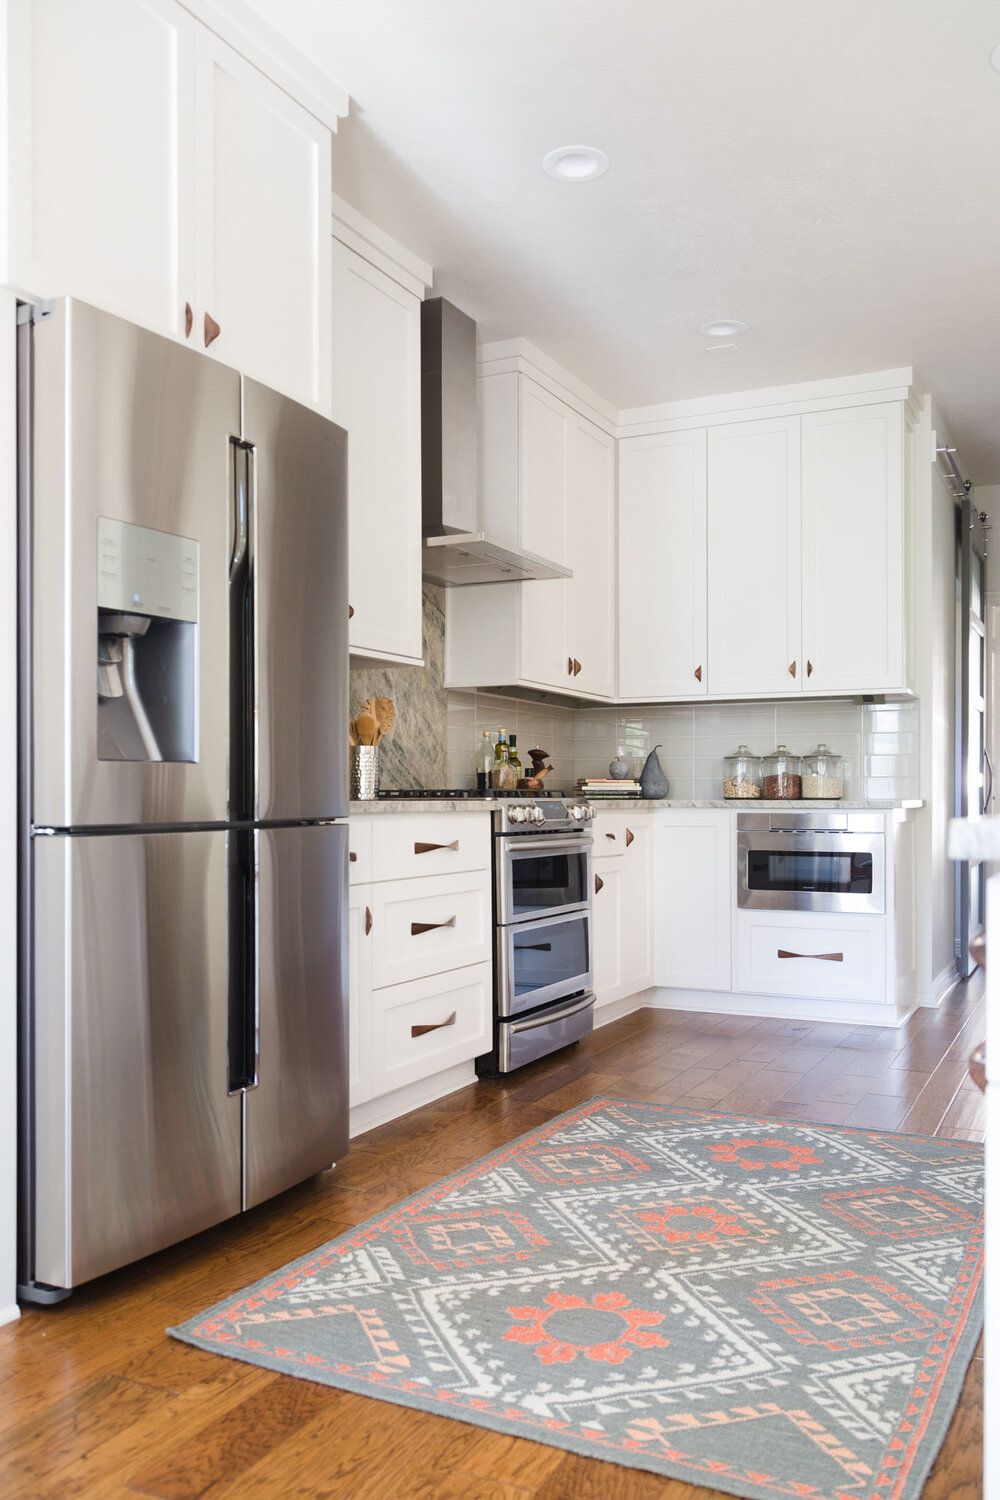 This white kitchen has more personality with the addition of the patterned rug. Designer, Carla Aston | Photographer: Tori Aston #whitekitchen